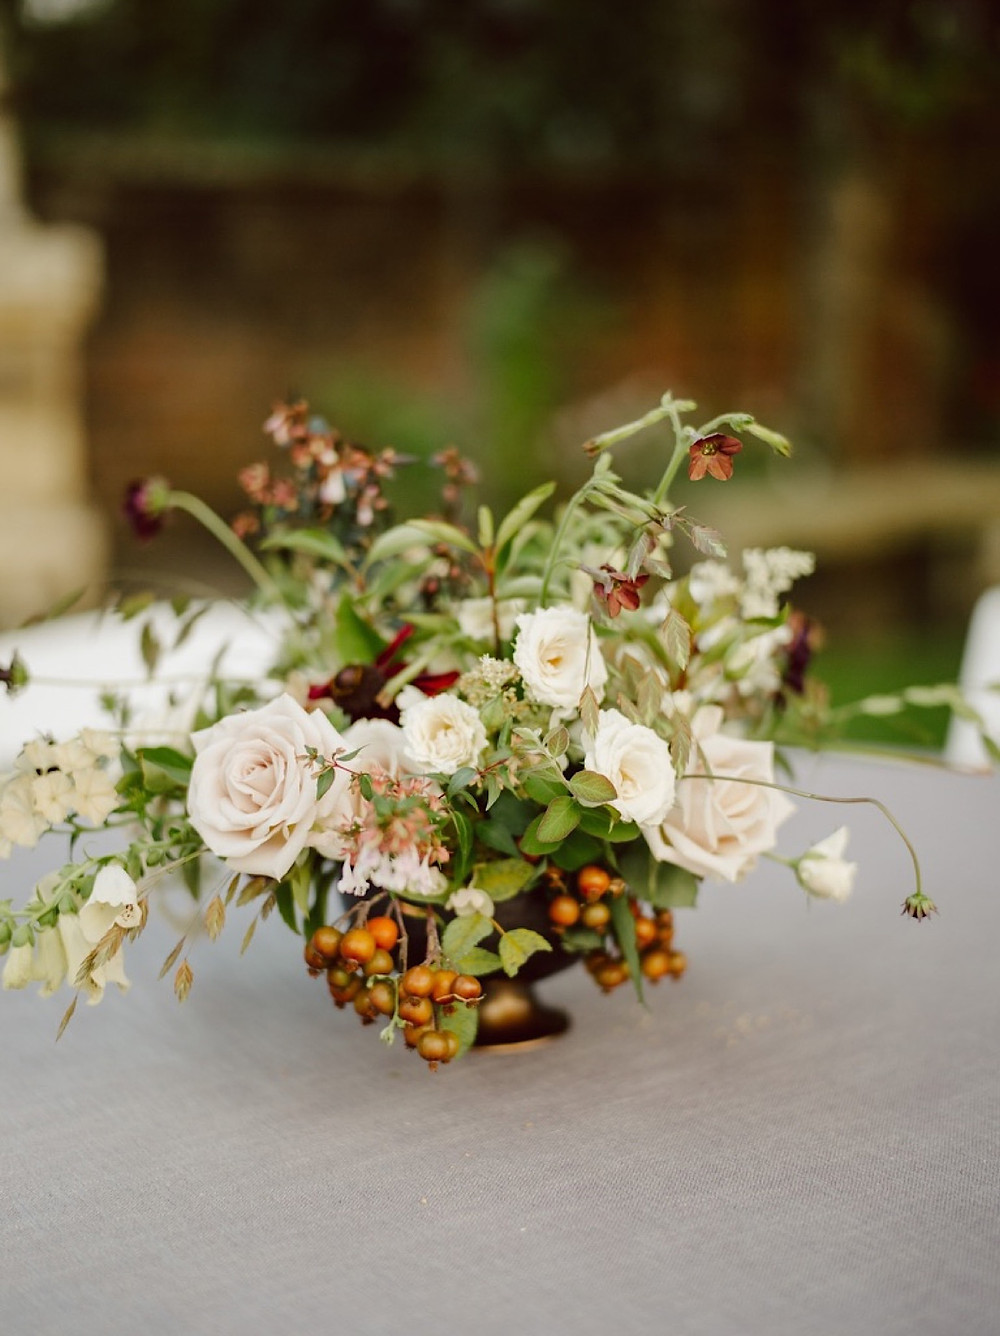 Wedding reception centerpiece at Thornewood Castle with cream, dusty rose, and burgundy tones